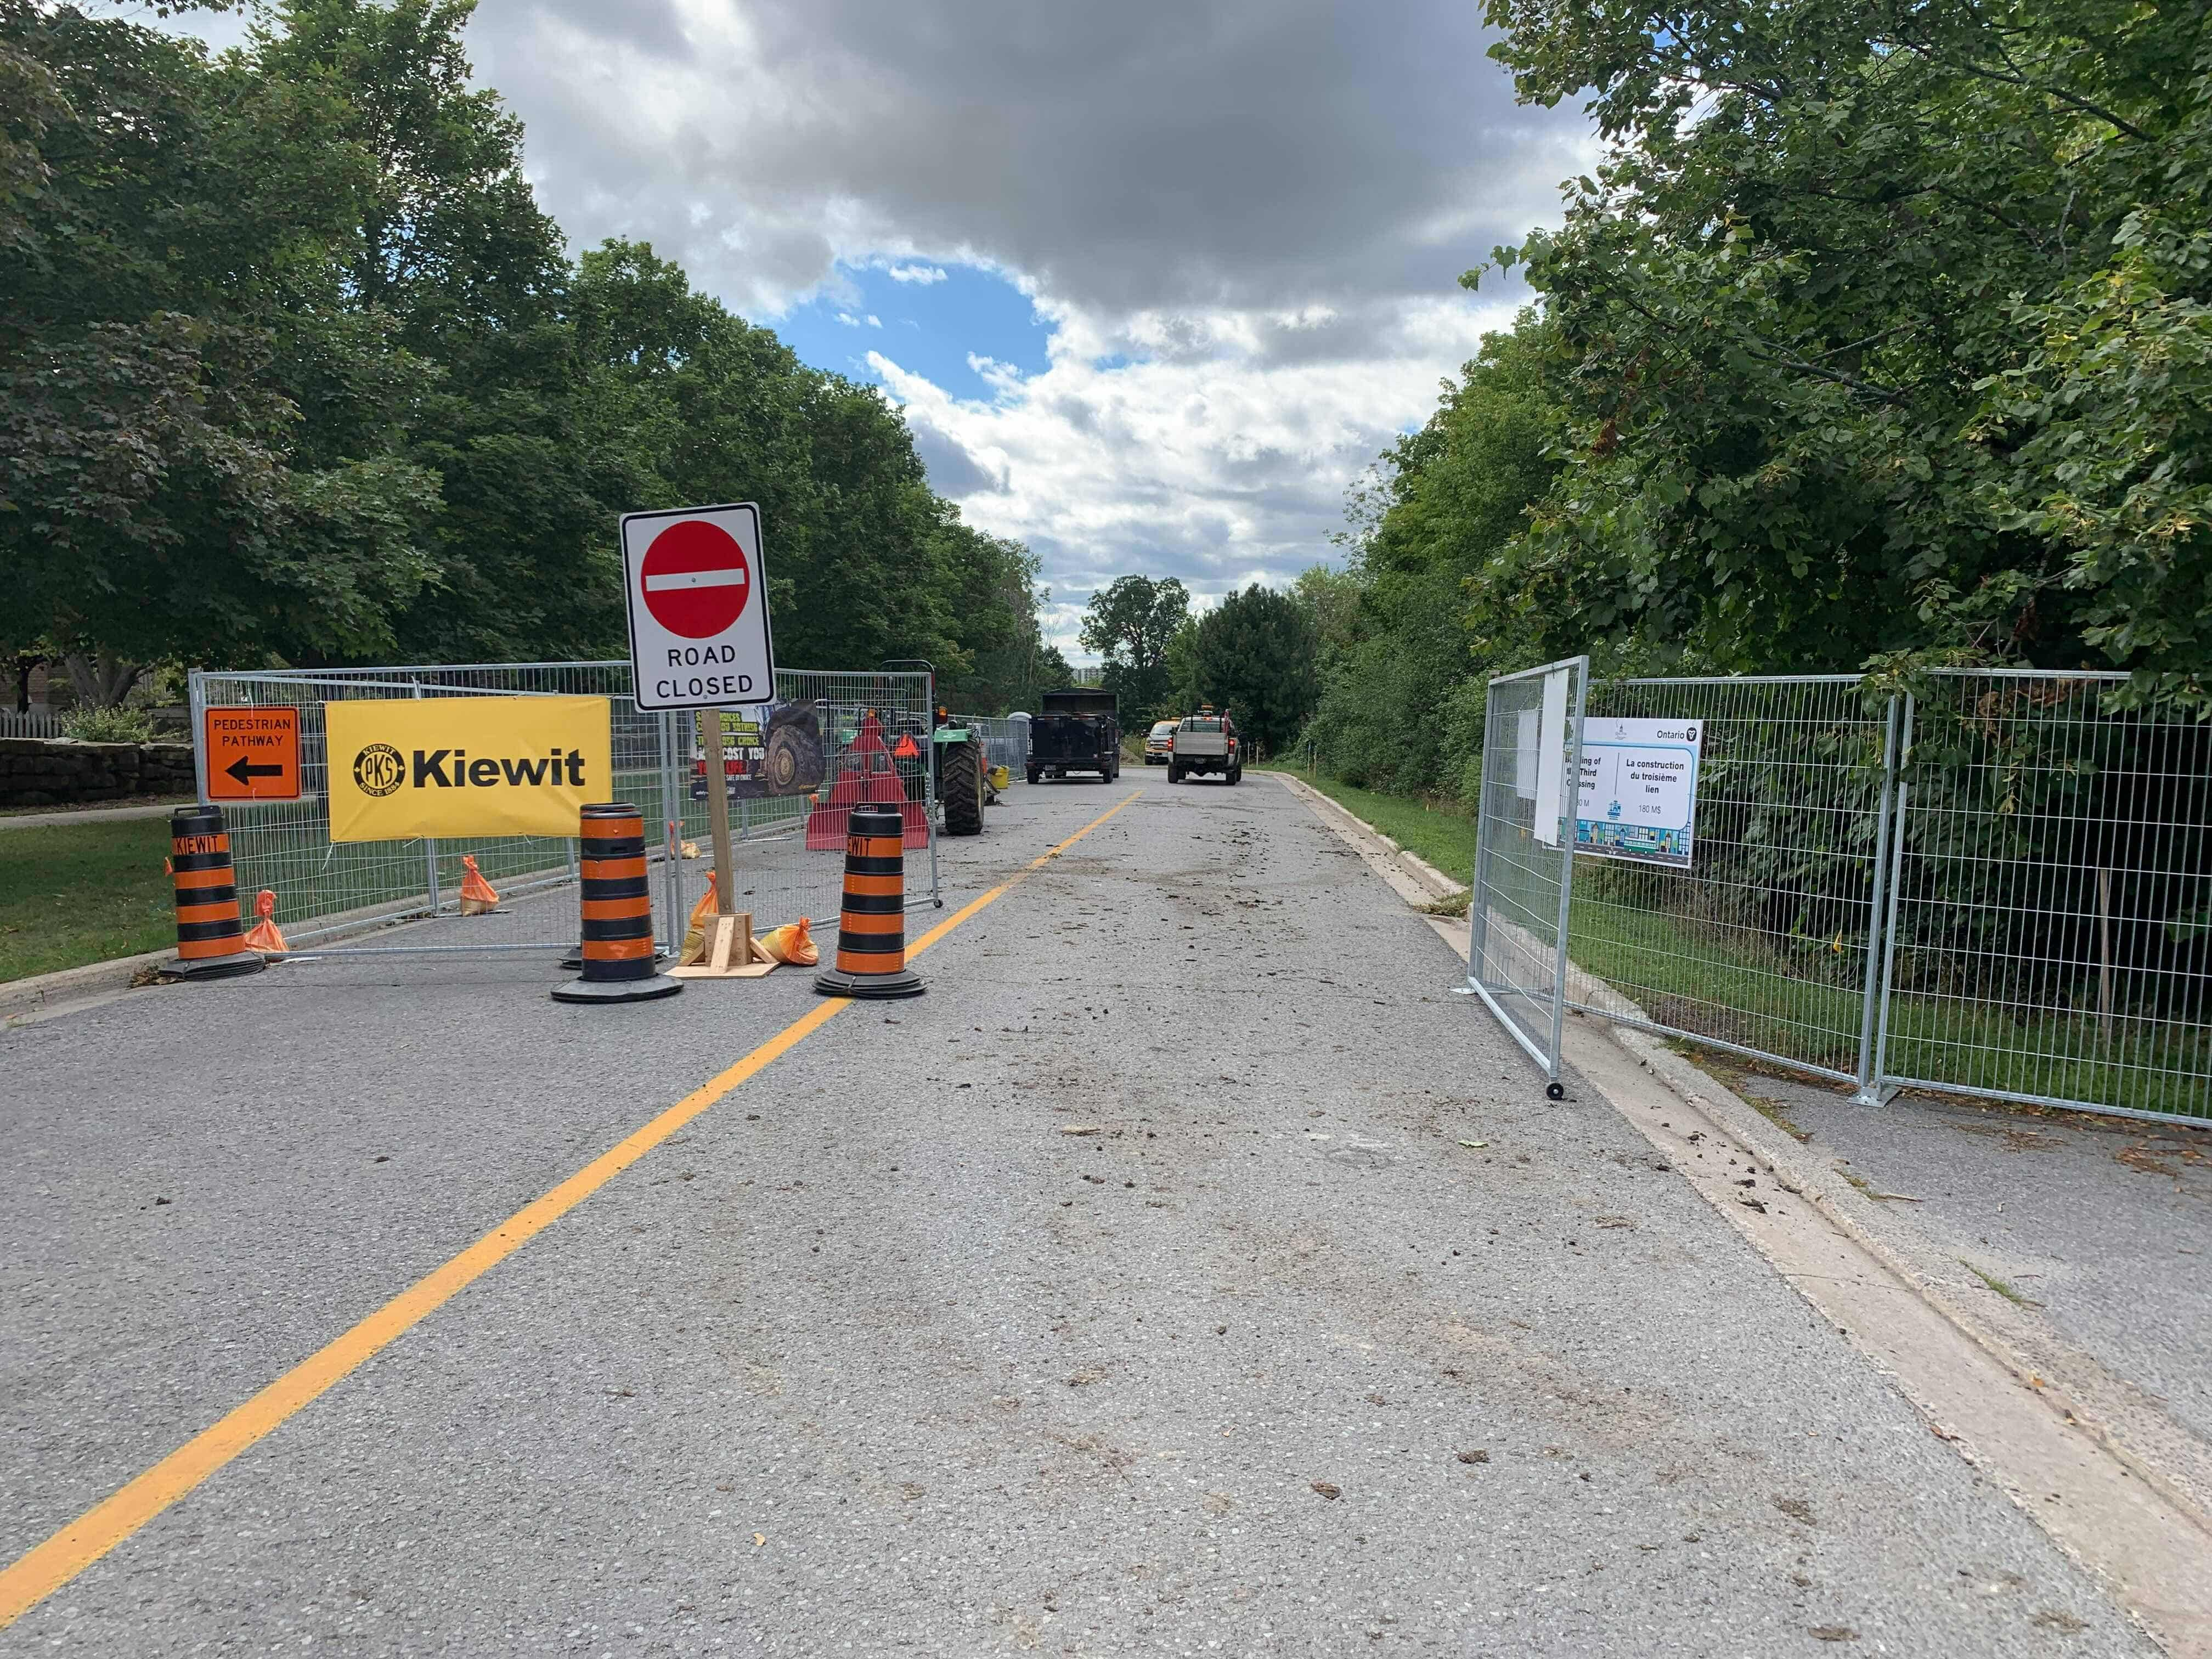 Kingston road closures and traffic delays, Sept 9-14 2019